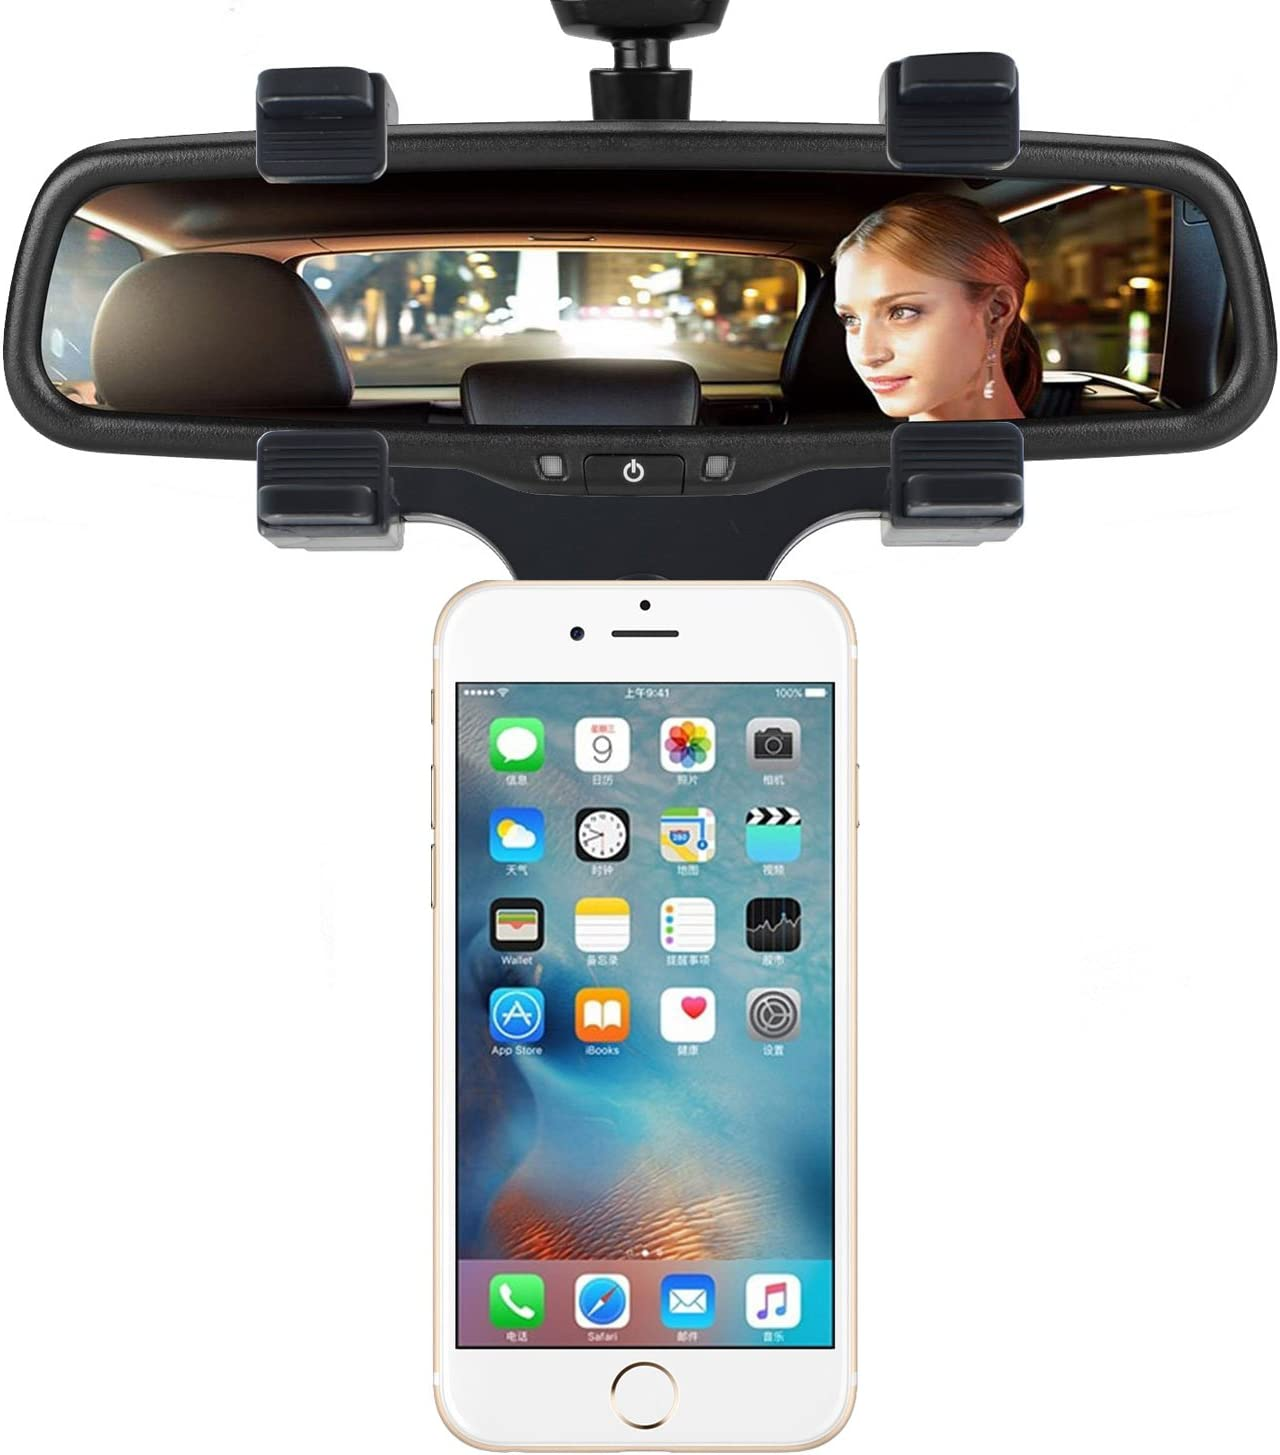 Black Google Nexus Samsung Galaxy S8//S7//S6 Edge GPS//PDA // MP3 // MP4 Devices and More INCART Magnetic Car Rearview Mirror Mount Car Phone Holder for iPhone X//8//8Plus//7//6s